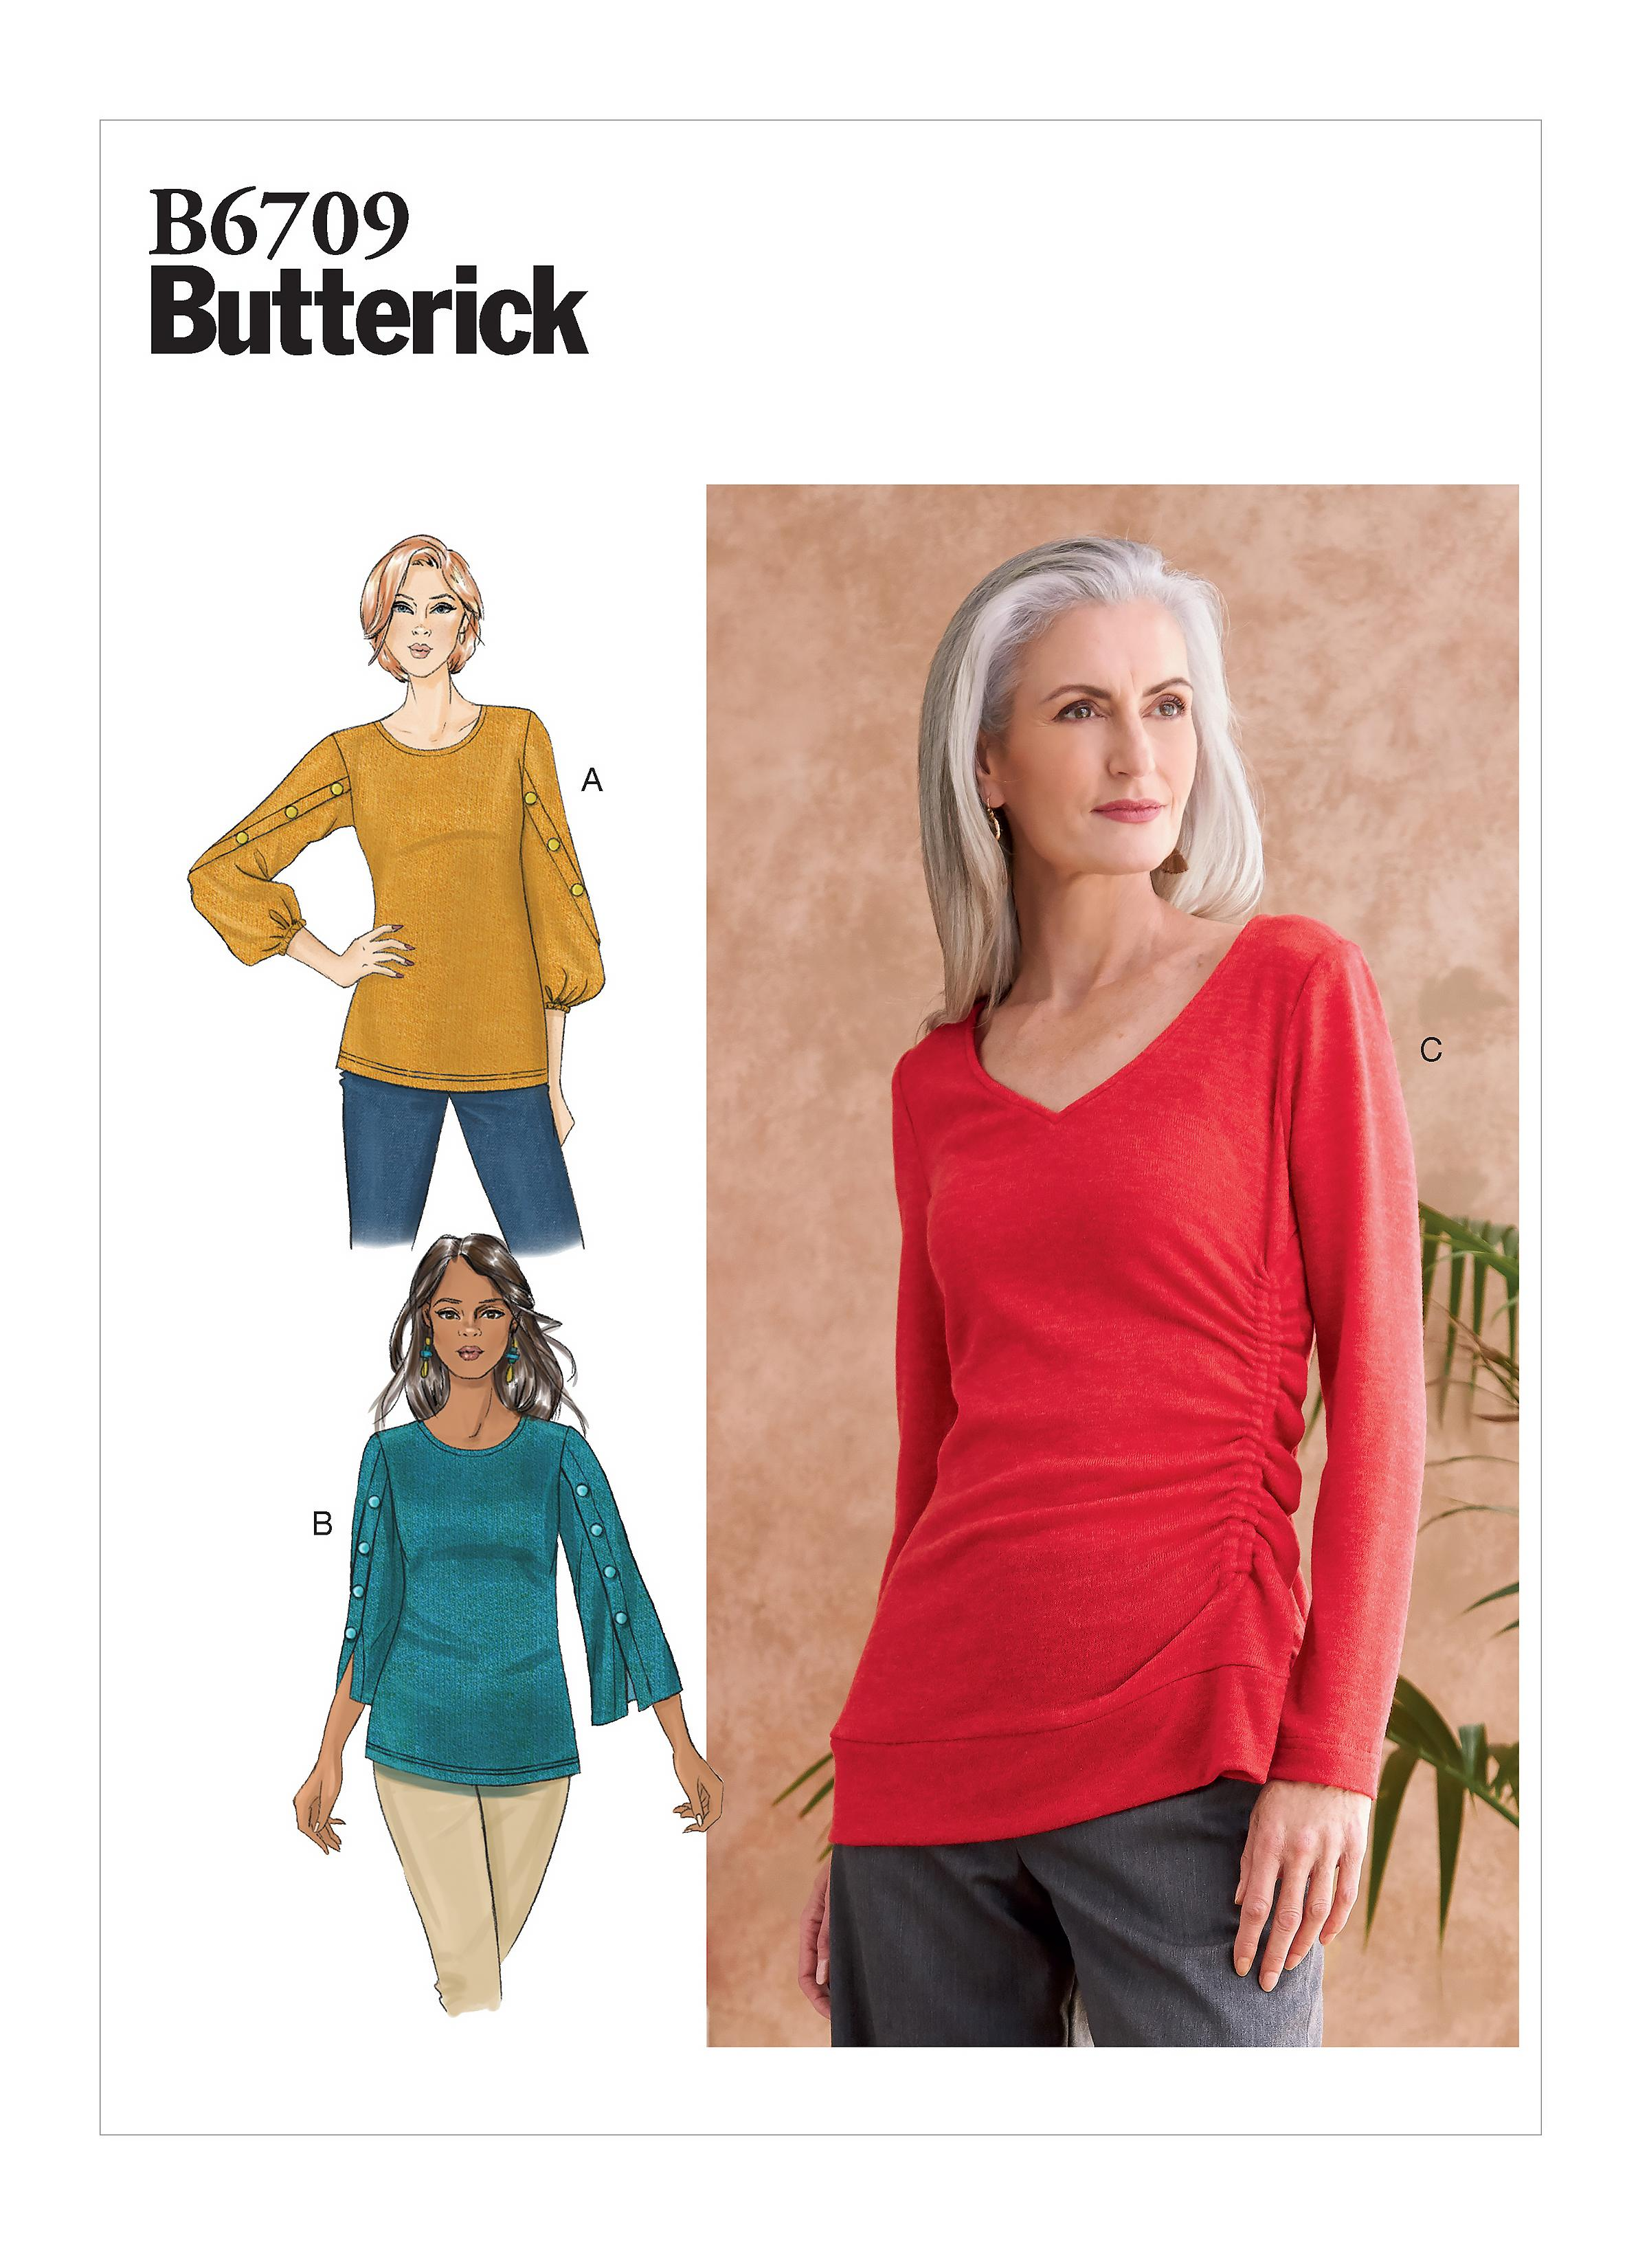 Butterick B6709 Misses' Top